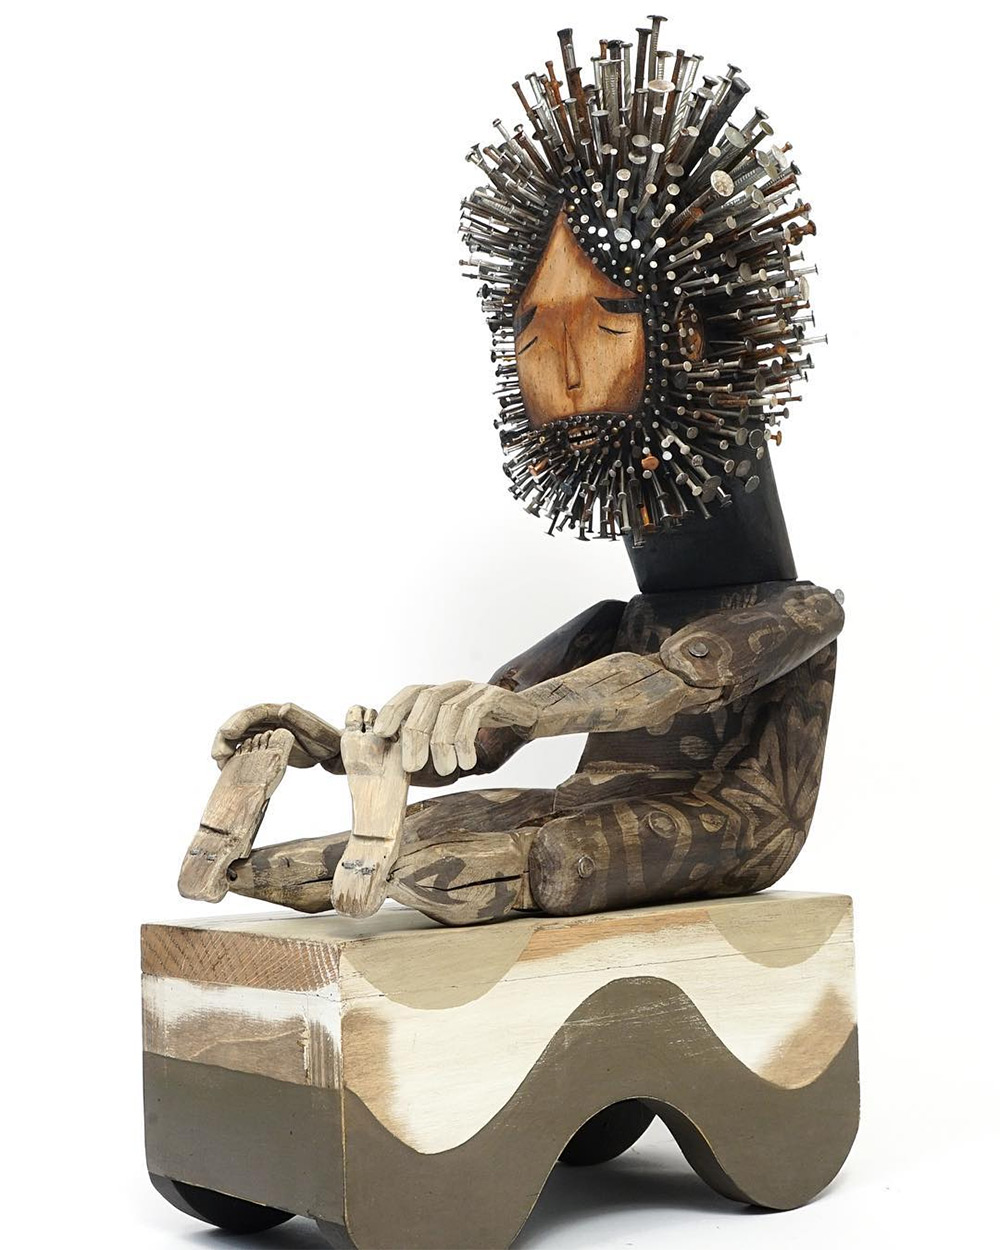 Stunningly Figurative Wood Sculptures Pierced With Hundreds Of Nails By Jaime Molina 7